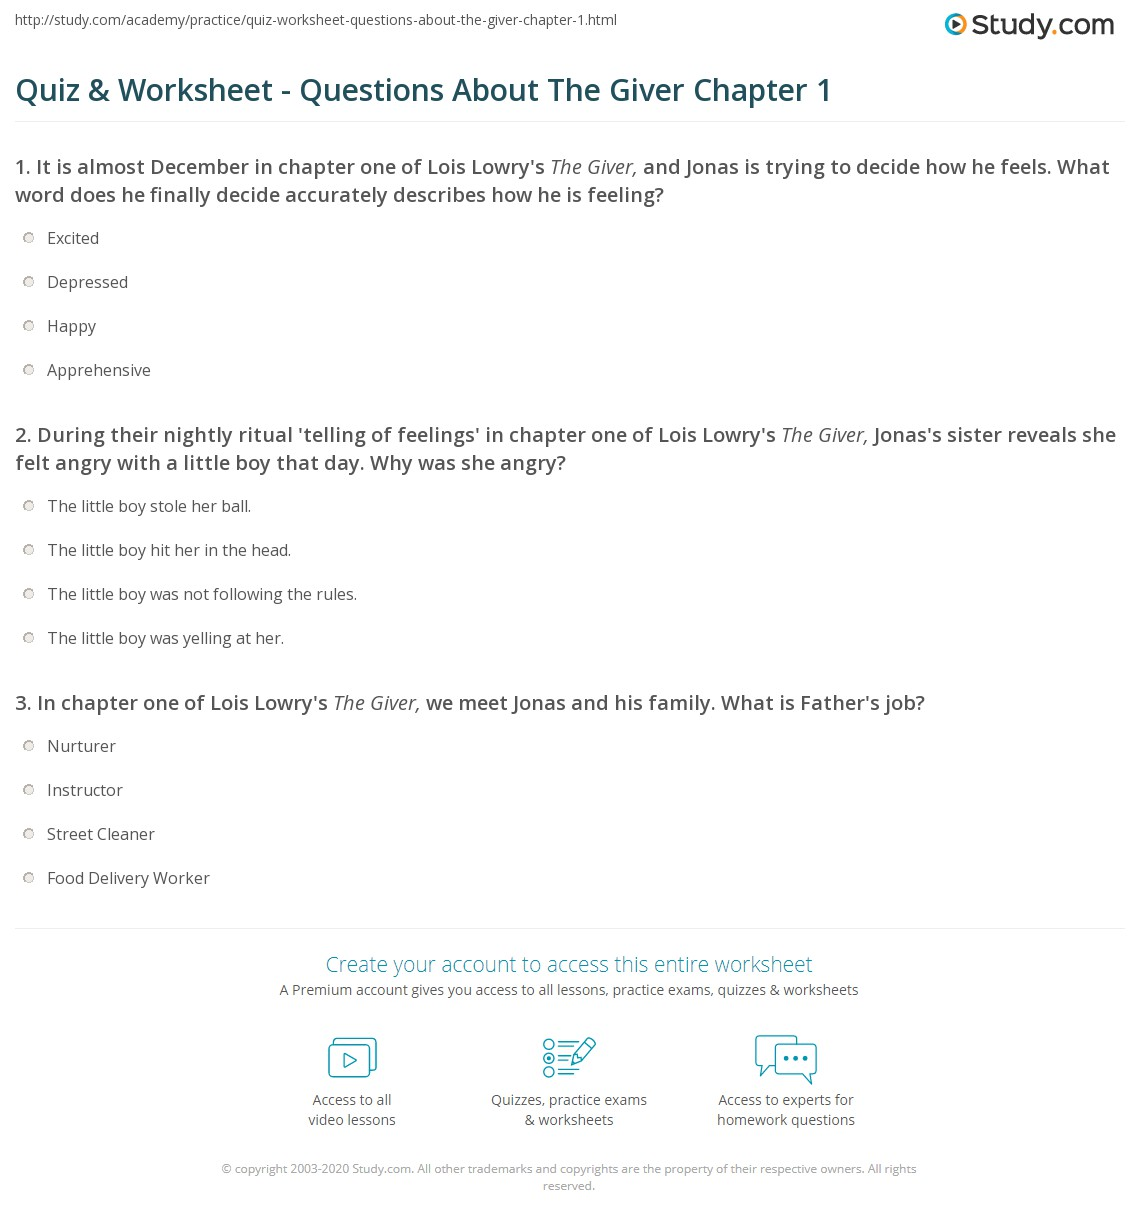 the giver by lois lowry chapter summary Study guide edited by richard j roberts & milicent wright  lois lowry's the giver was among the first of this genre: written in 1993, it sold 10 million copies.